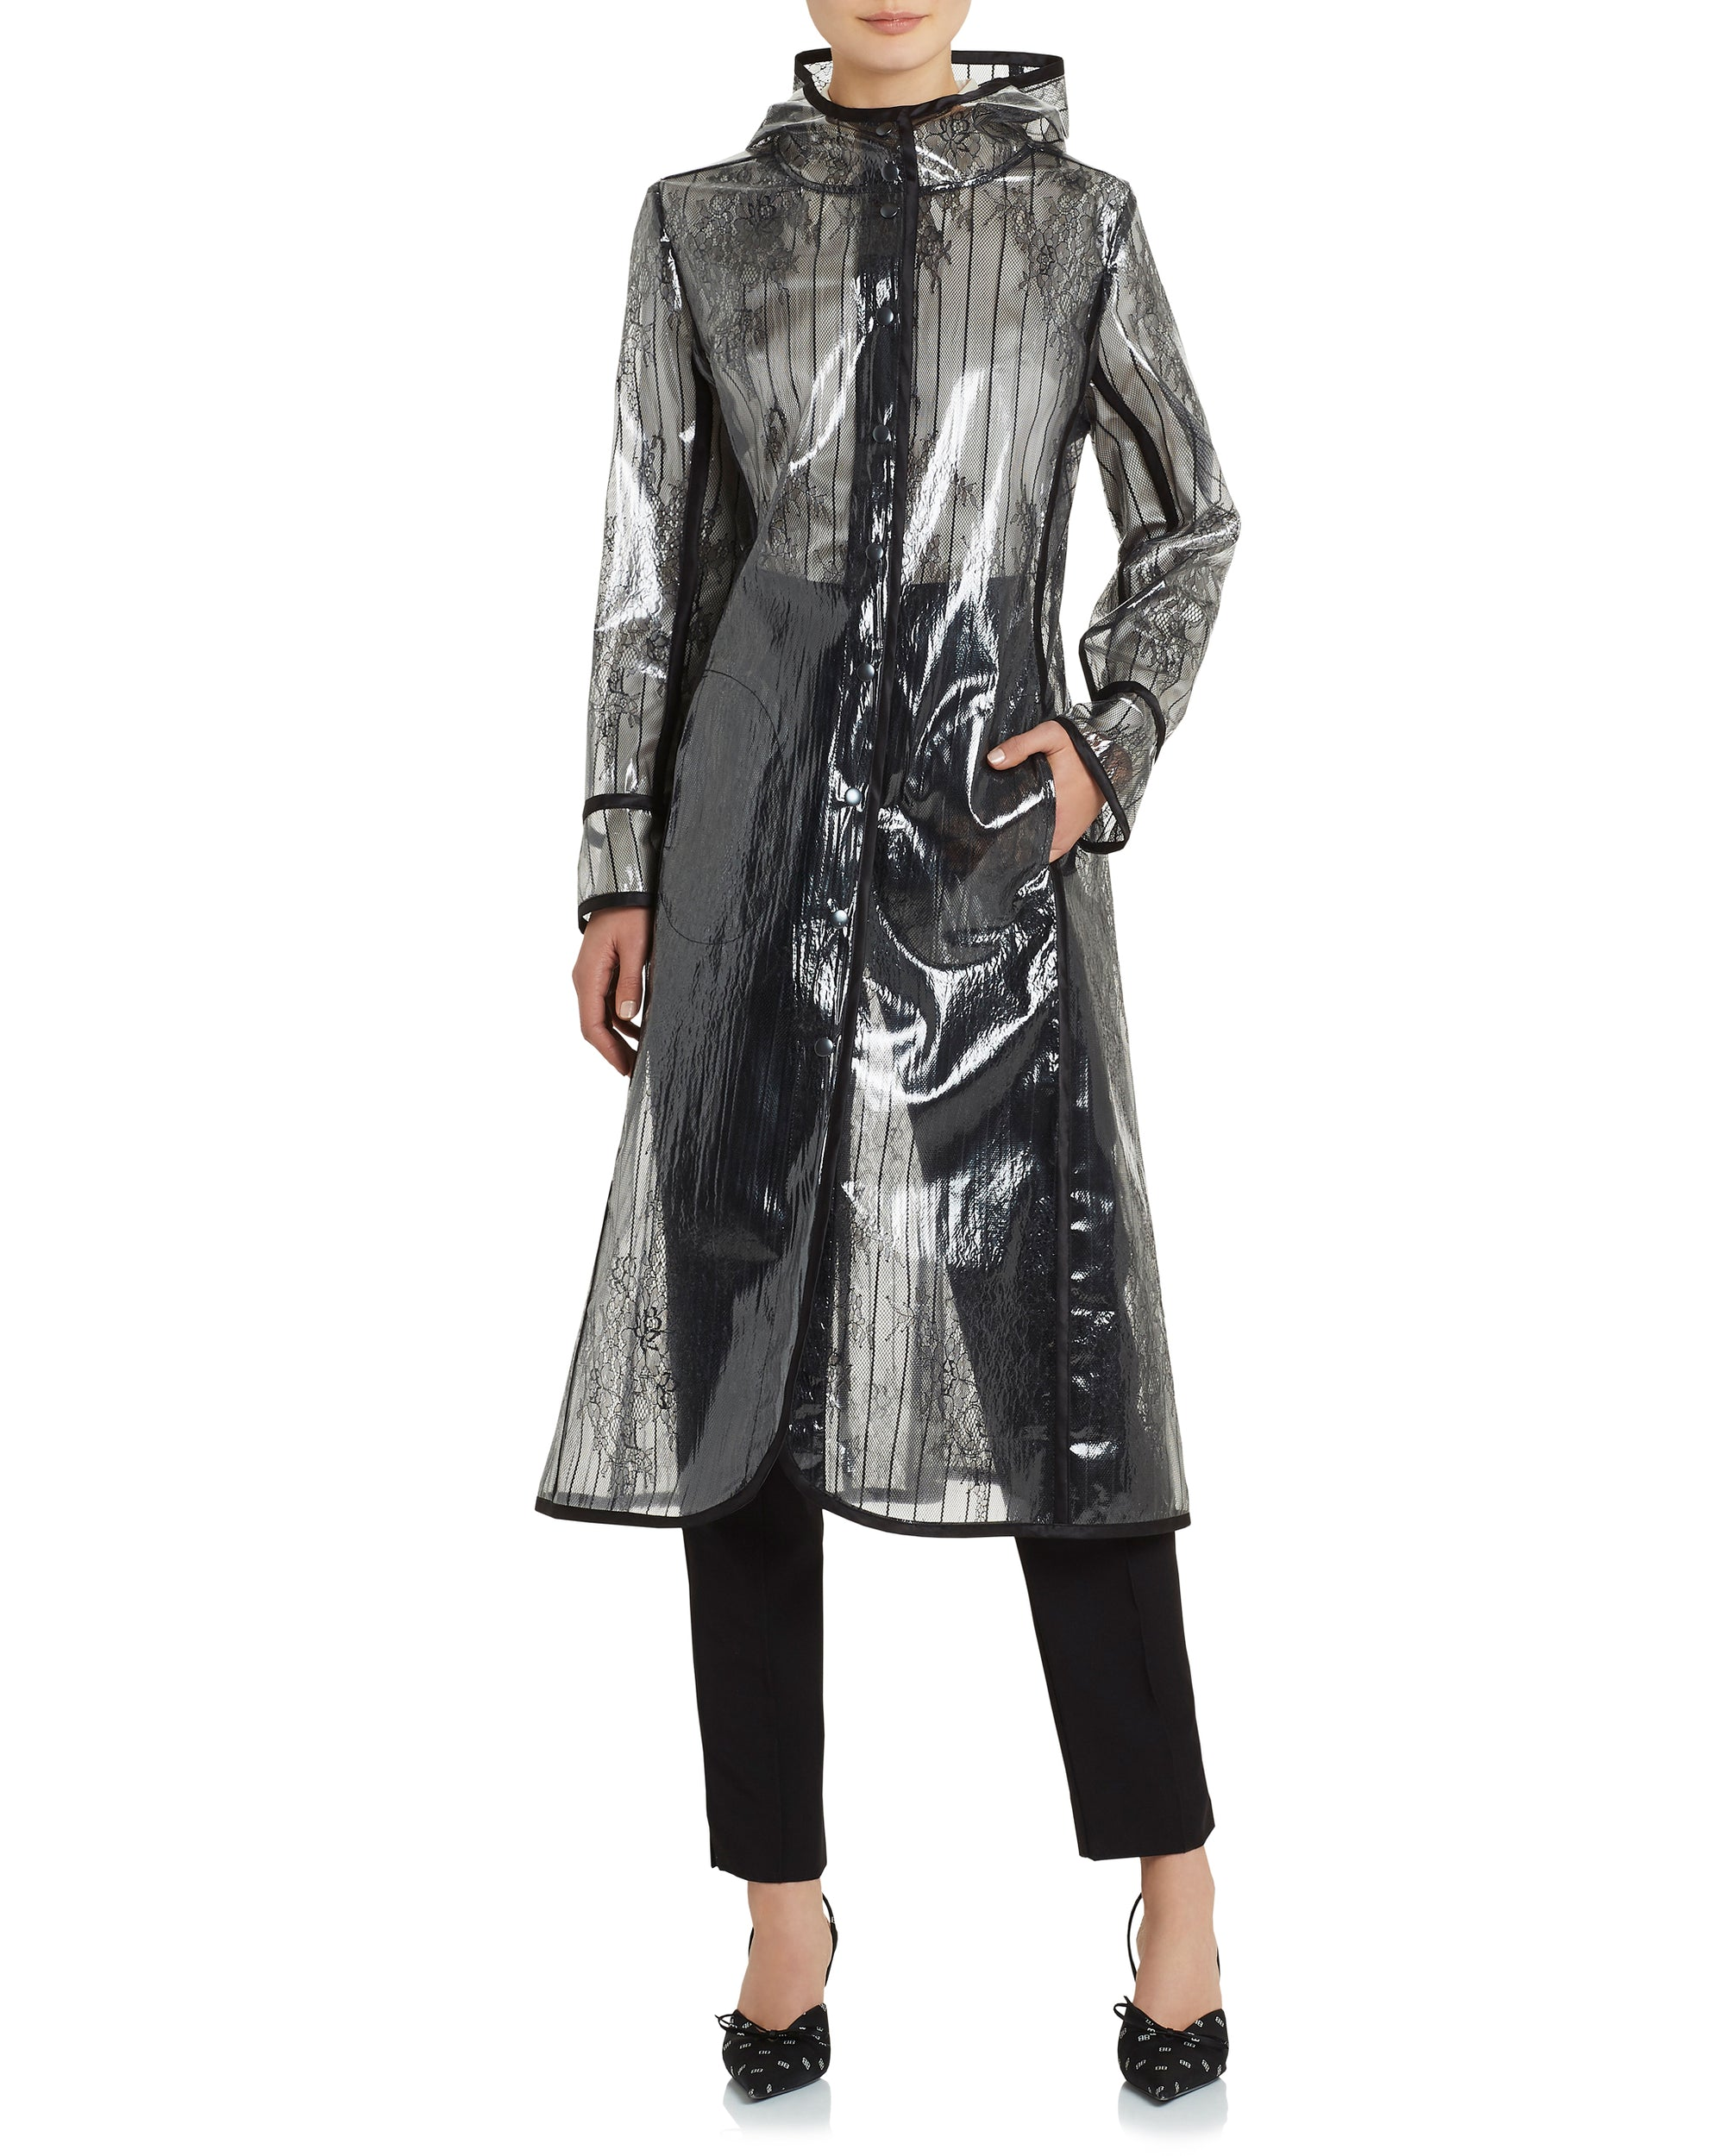 Estelle Raincoat